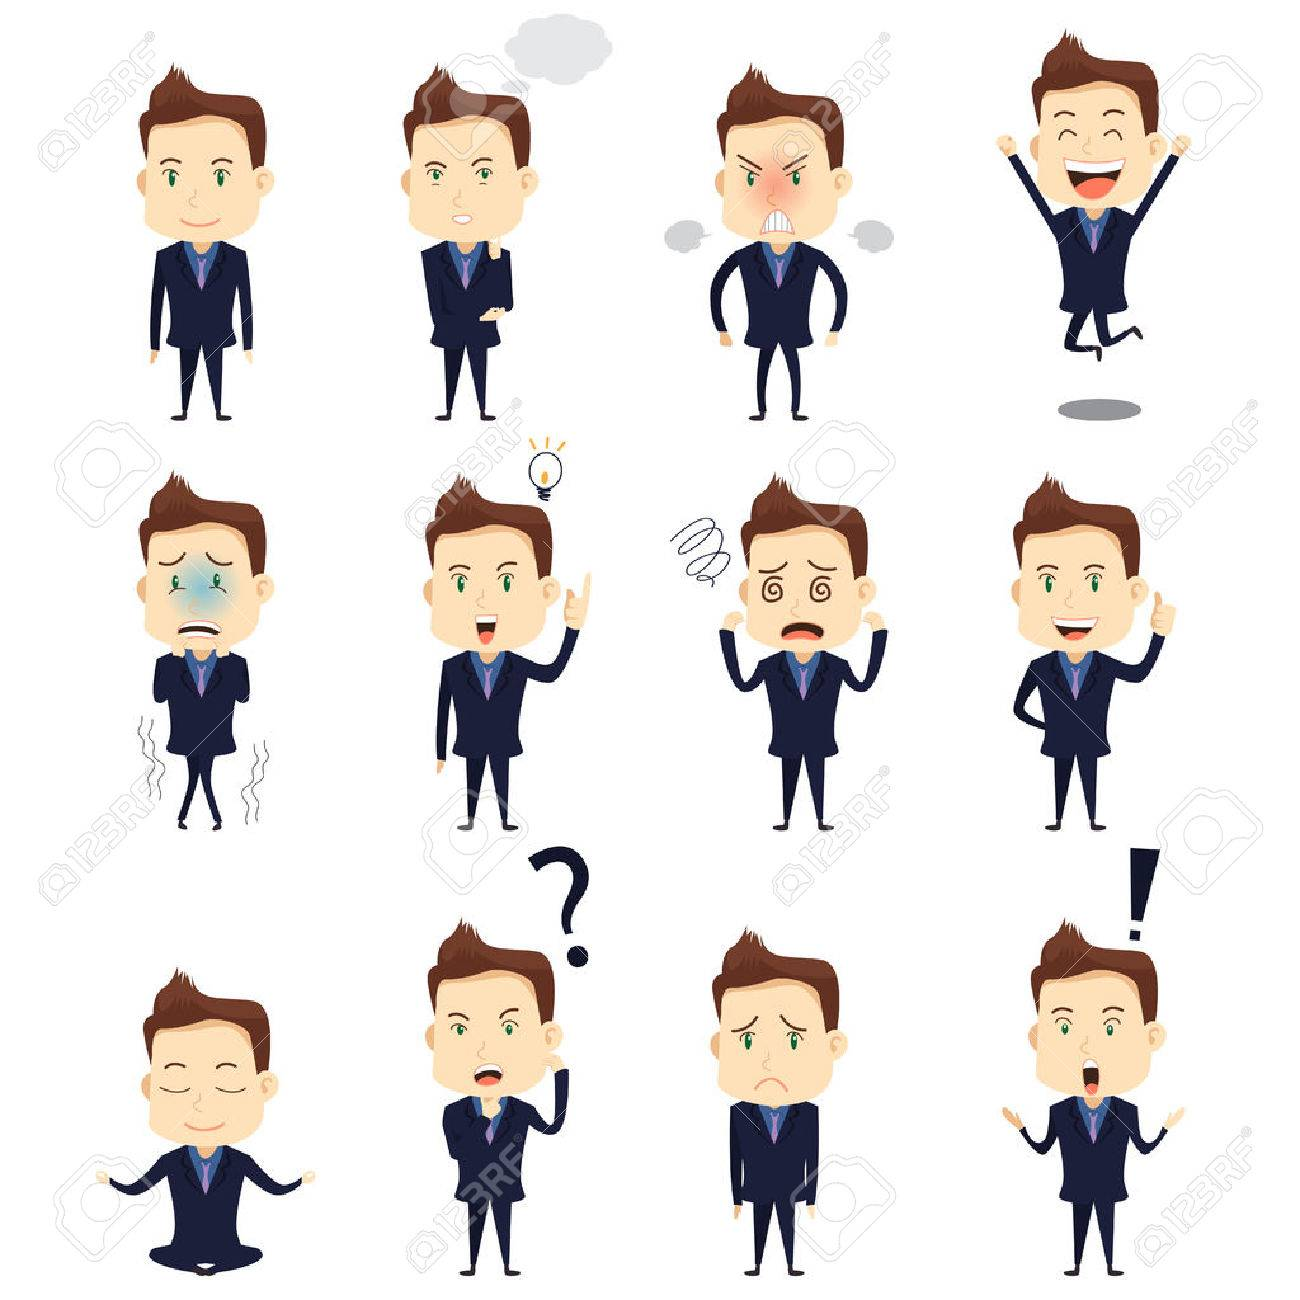 A vector illustration of businessman expression icon sets Stock Vector - 42155117